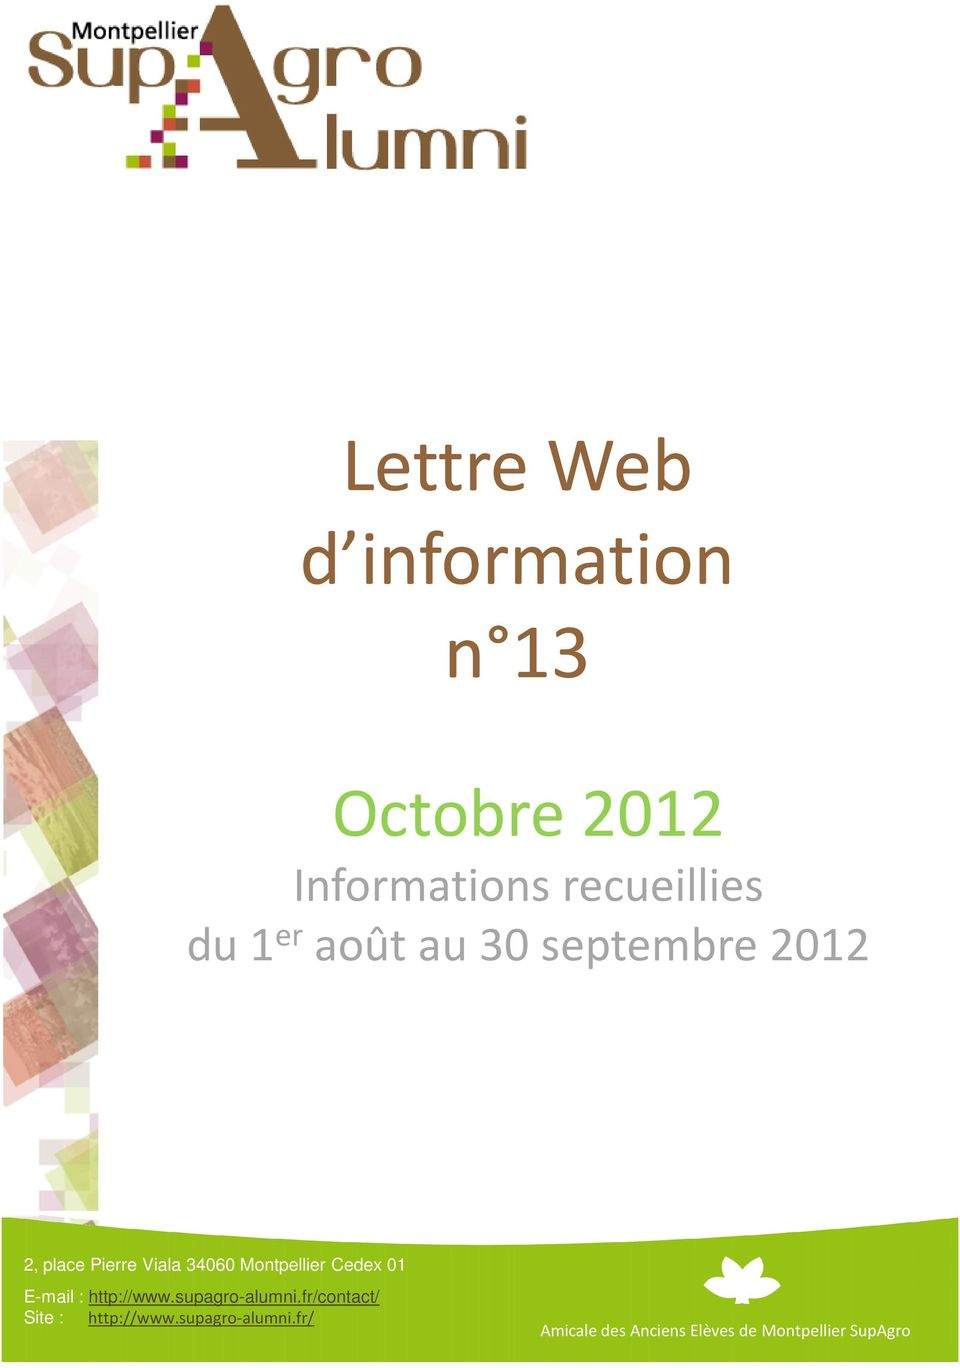 Informations recueillies